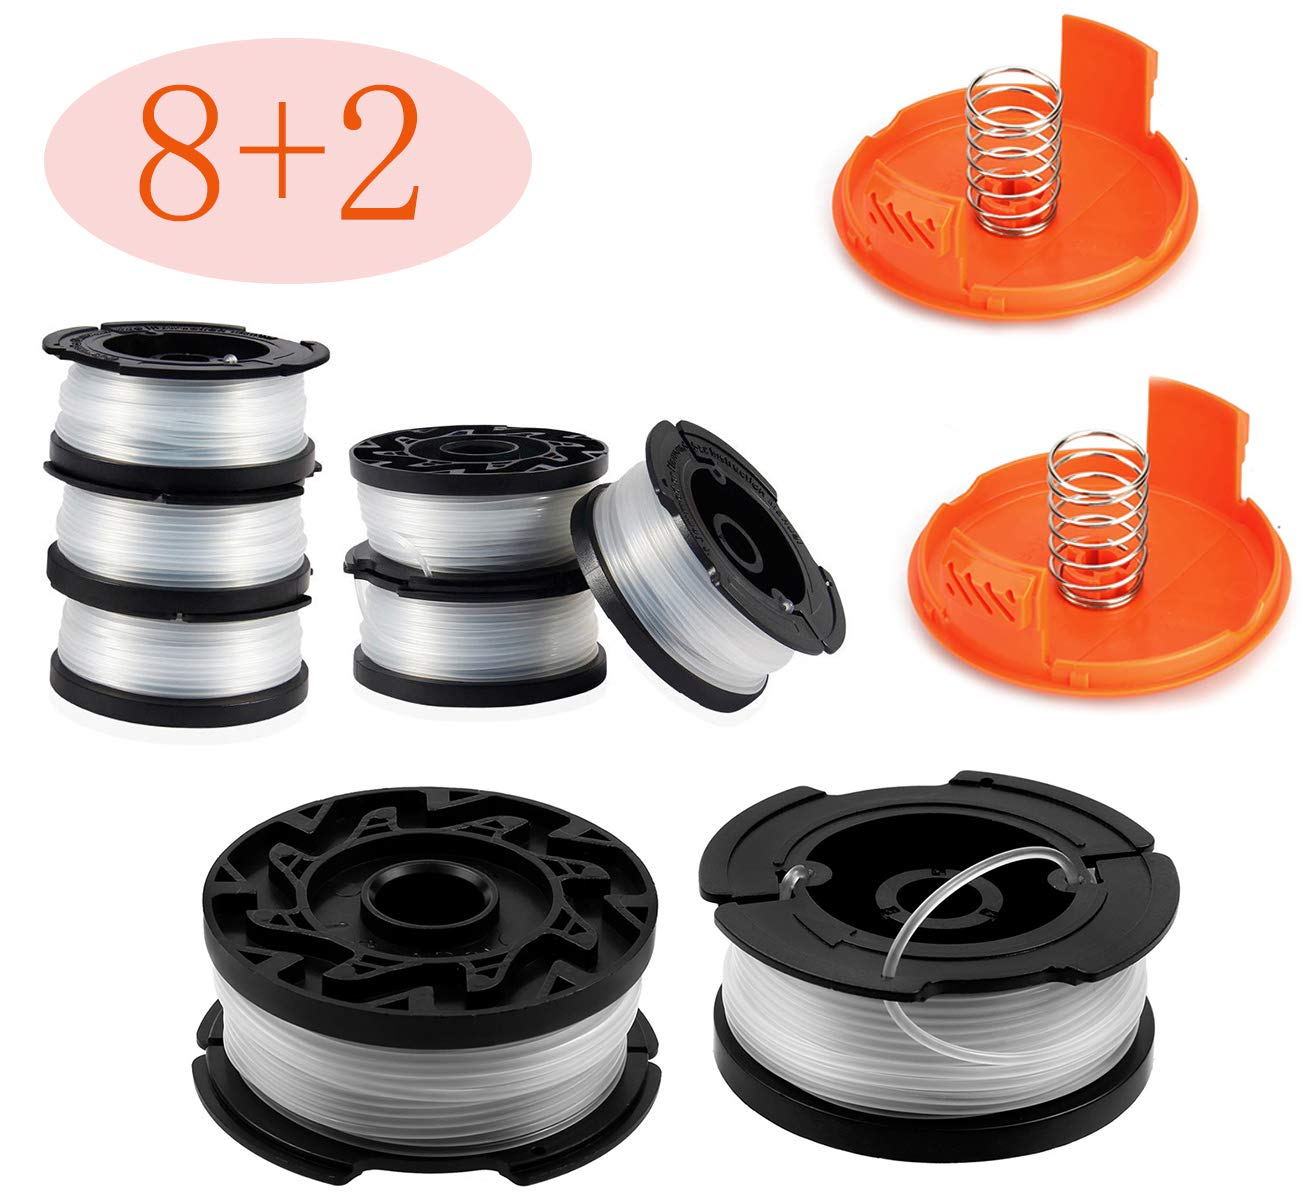 30ft 0.065'' Line String Trimmer Replacement Spool - Autofeed Trimmer Line Spool,10-Pack Compatible with Black+Decker AF-100-3ZP Weed Eater String Trimmers ( 8 Replacement Line Spool,2 Trimmer Cap) by LEIMO